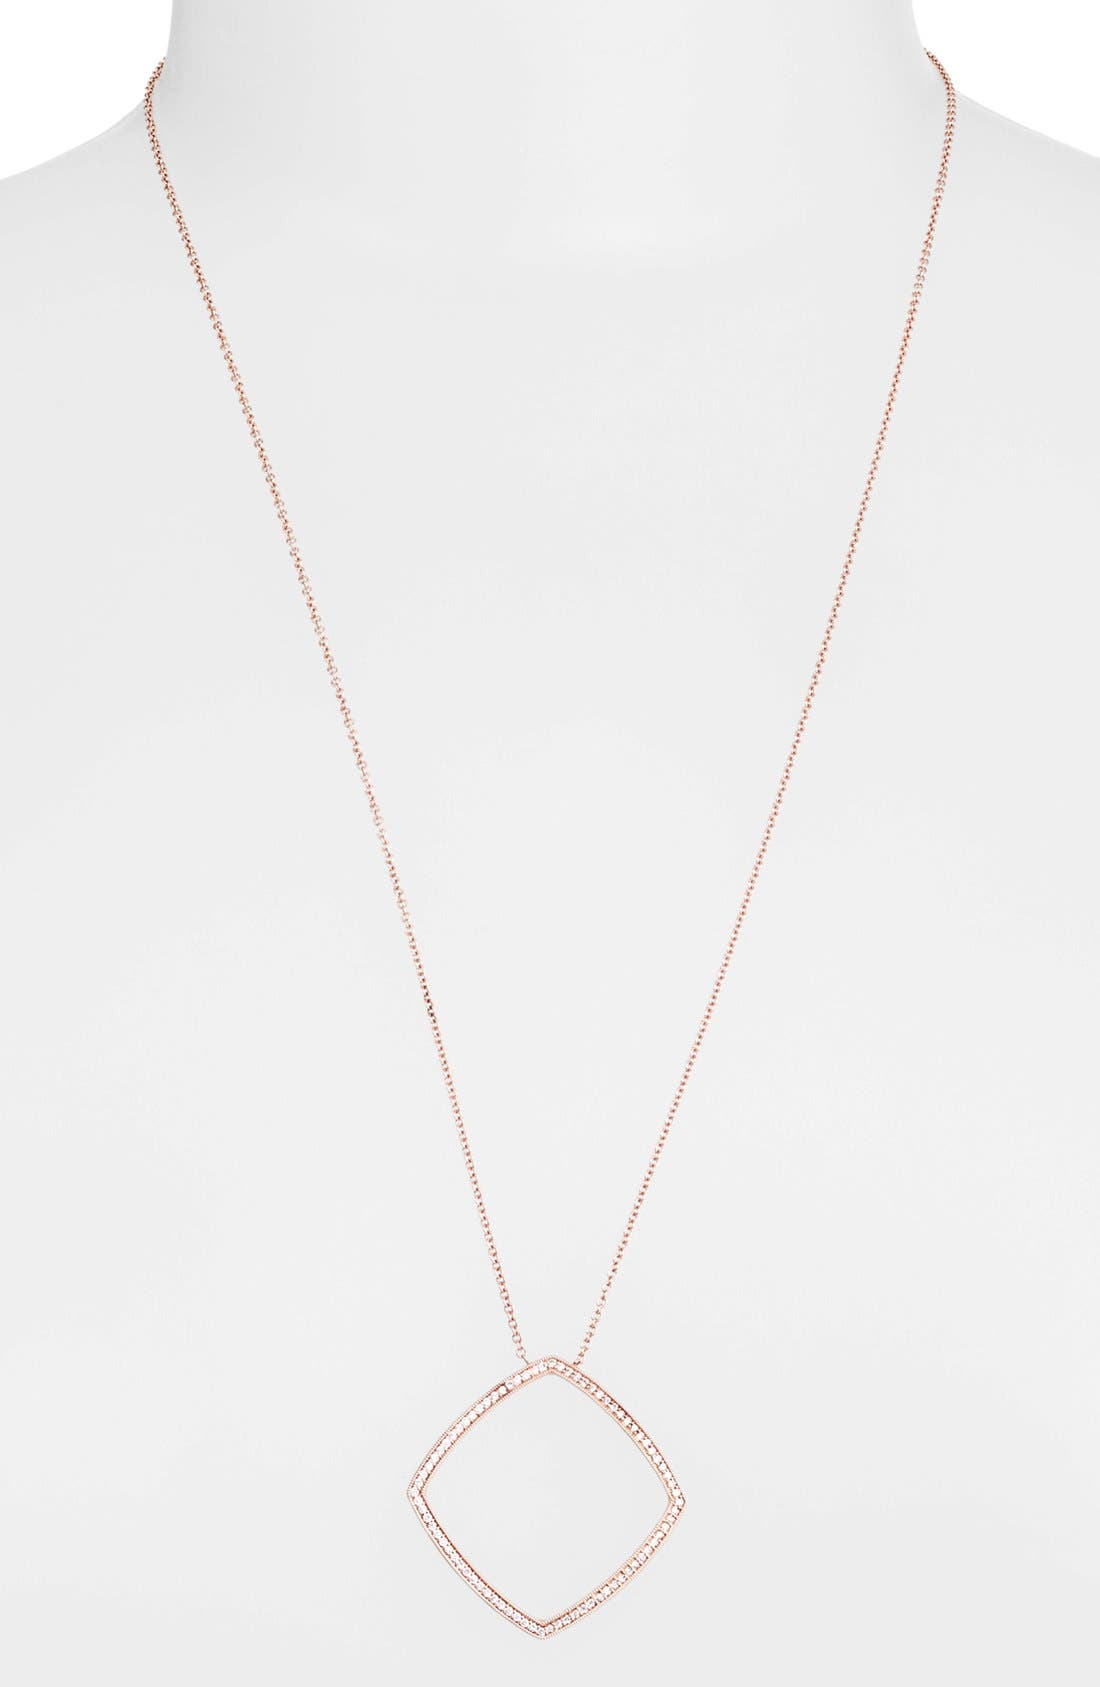 Main Image - Dana Rebecca Designs 'Alexa Jordyn' Diamond Pendant Necklace